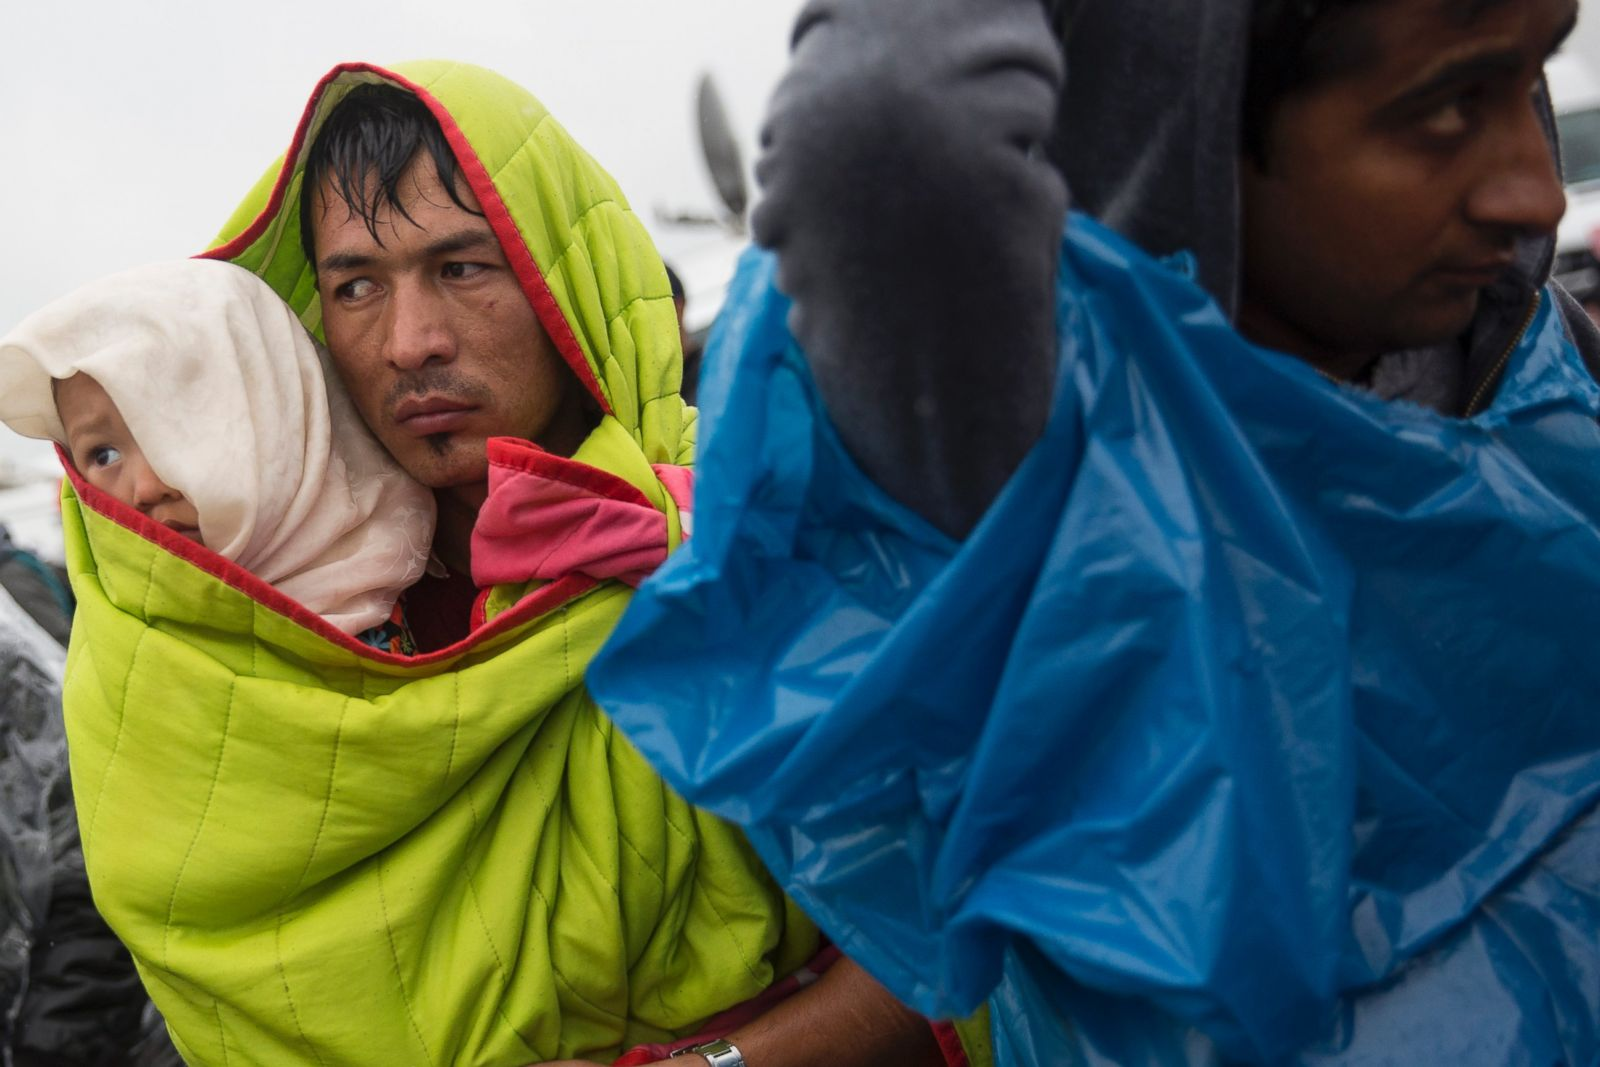 Seeking Shelter Amid War and Violence Refugees Flee to Europe Photos ...